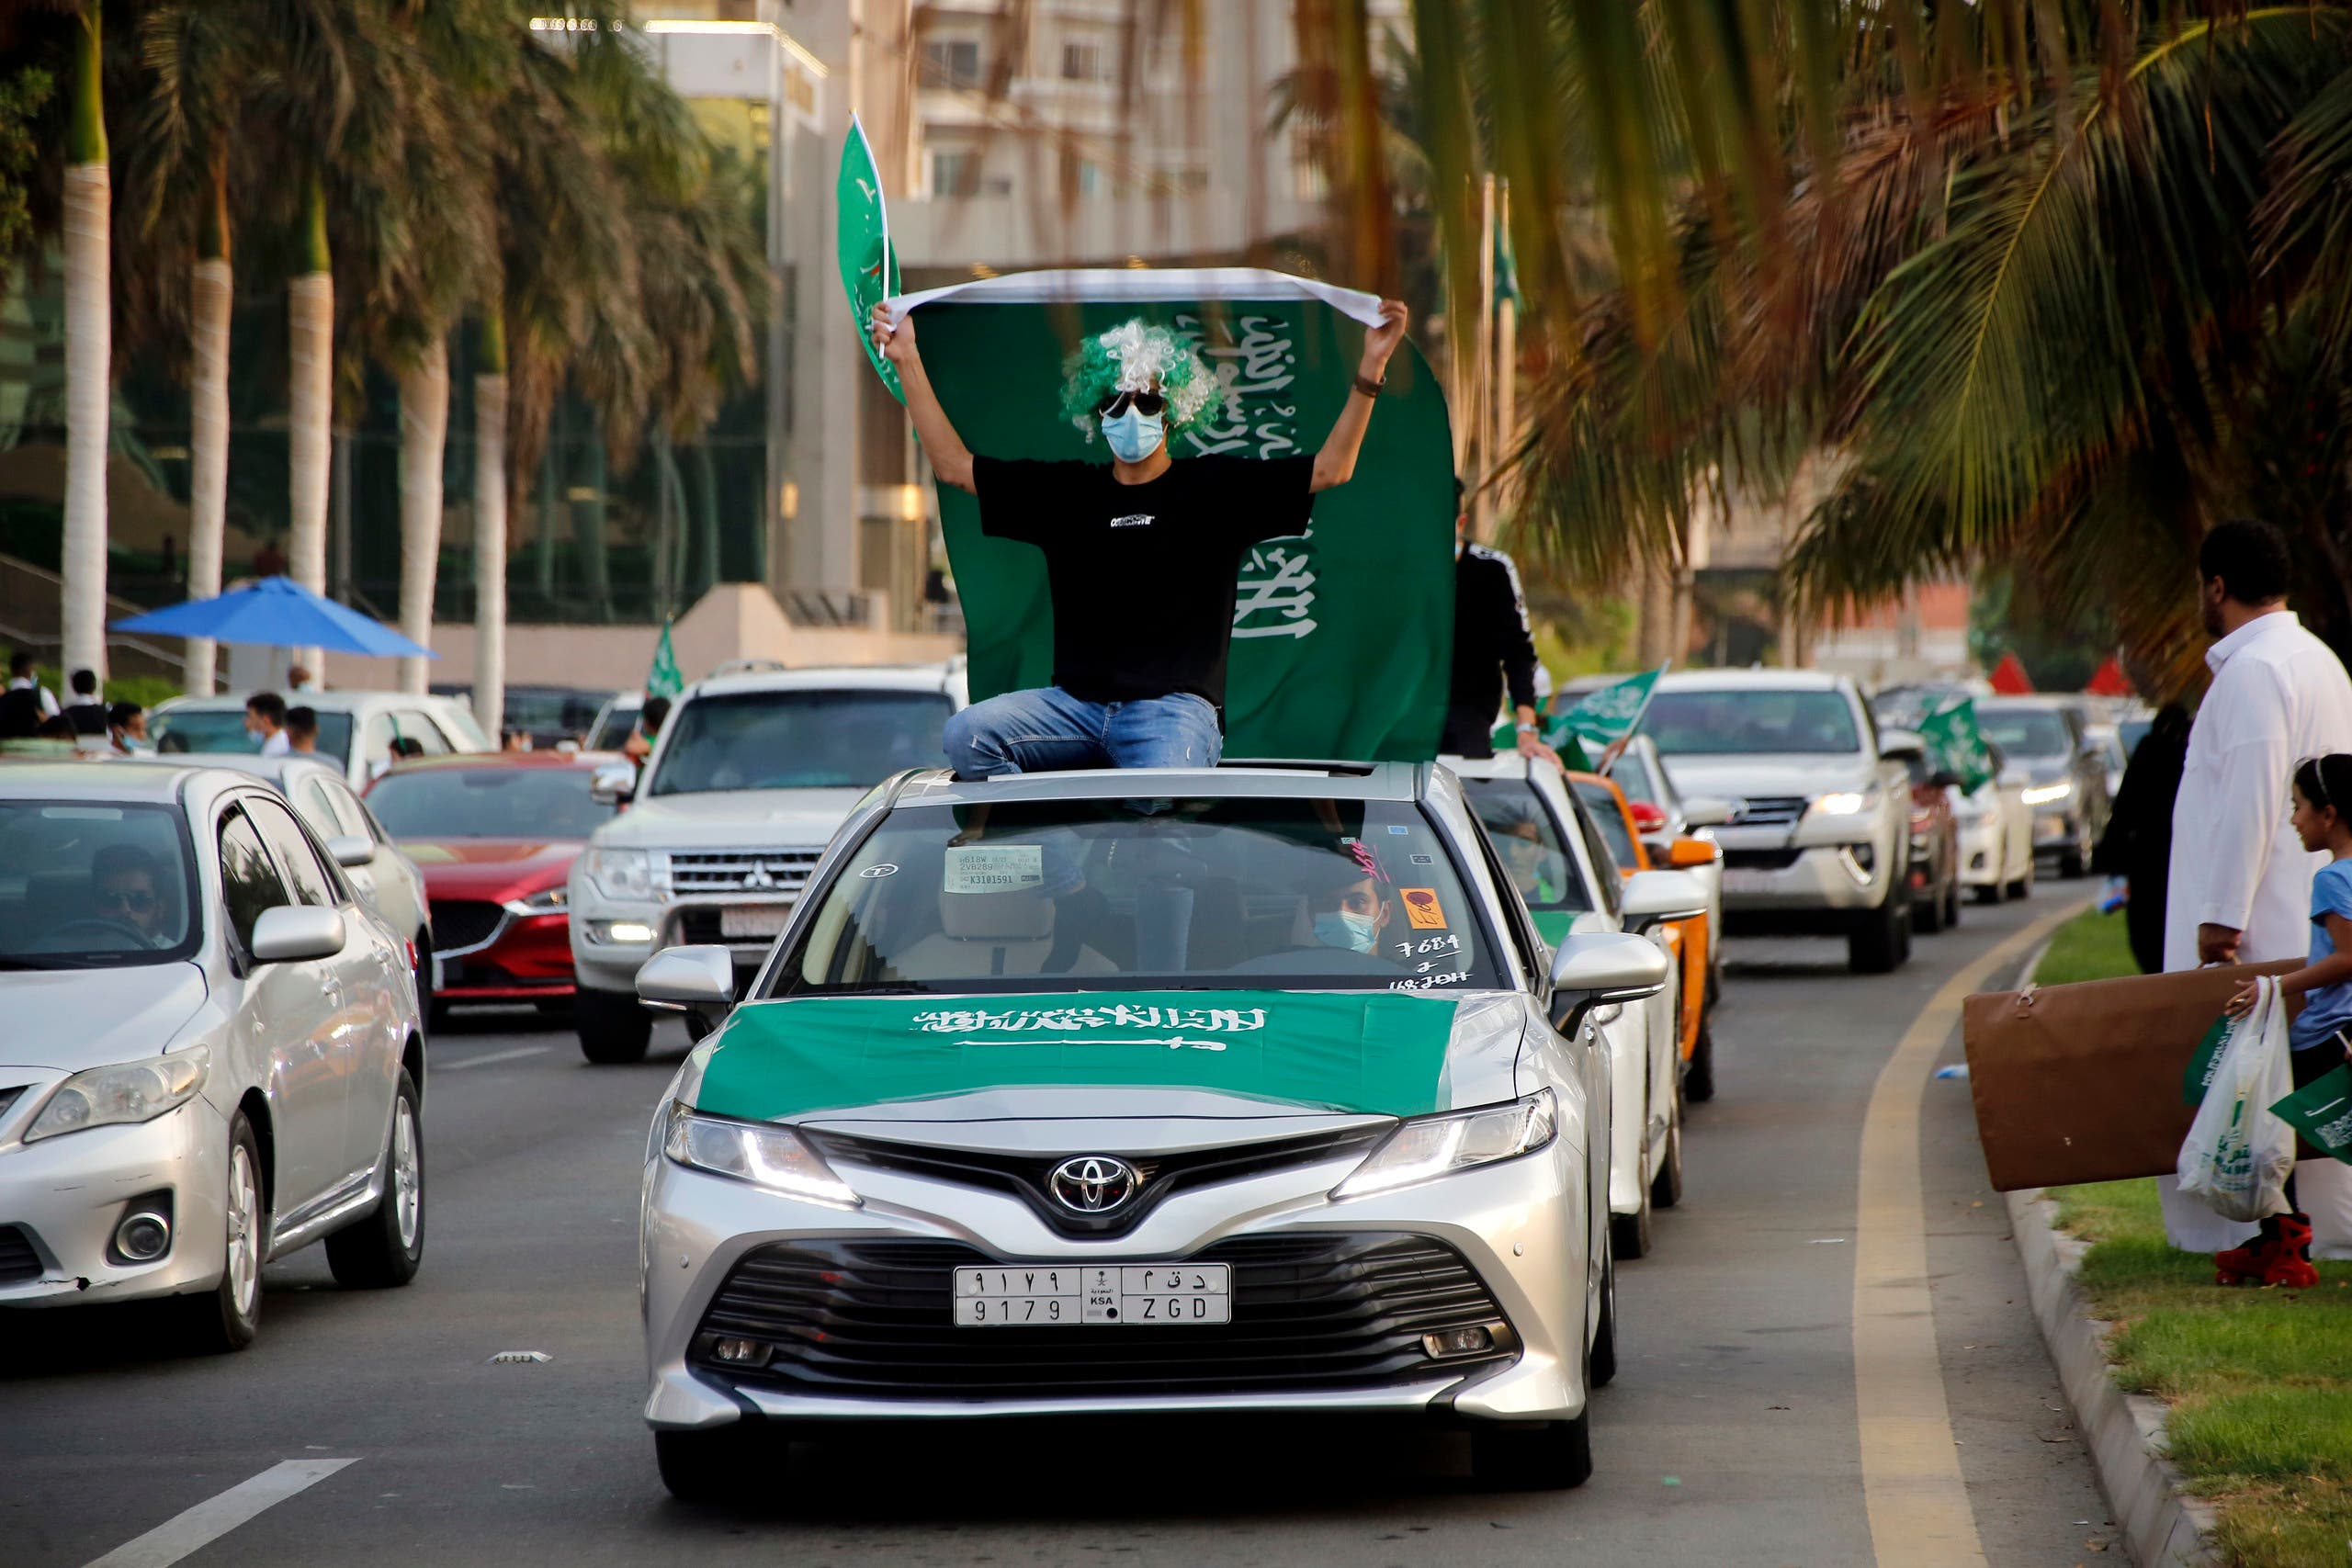 A Saudi waves a national flag as he wears a face mask to protect against coronavirus during celebrations marking National Day to commemorate the unification of the country as the Kingdom of Saudi Arabia, in Jeddah, Saudi Arabia, Wednesday, Sept. 23, 2020. (AP)